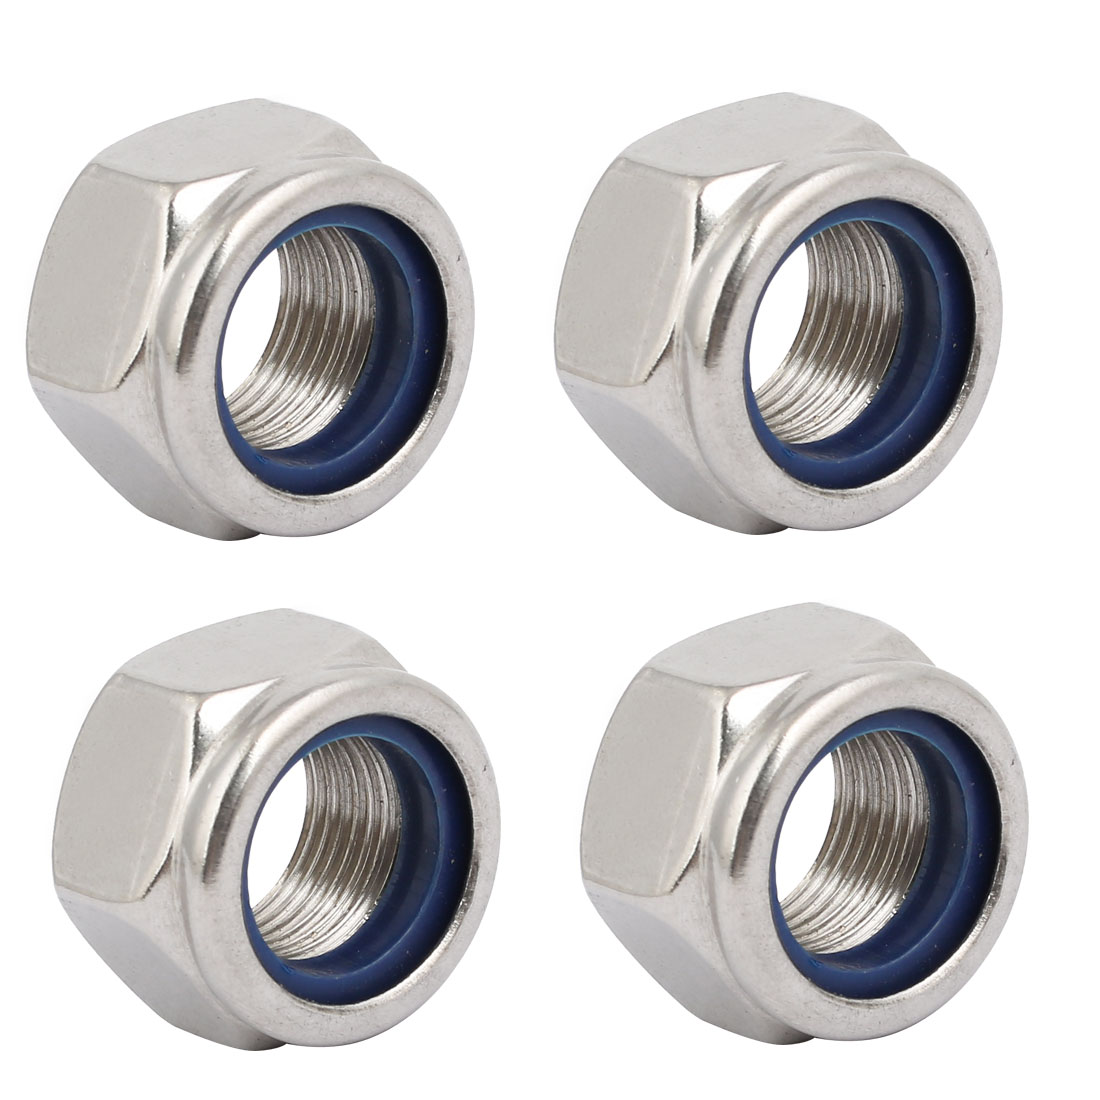 4pcs M18 x 1.5mm Pitch Metric Fine Thread 304 Stainless Steel Hex Lock Nuts